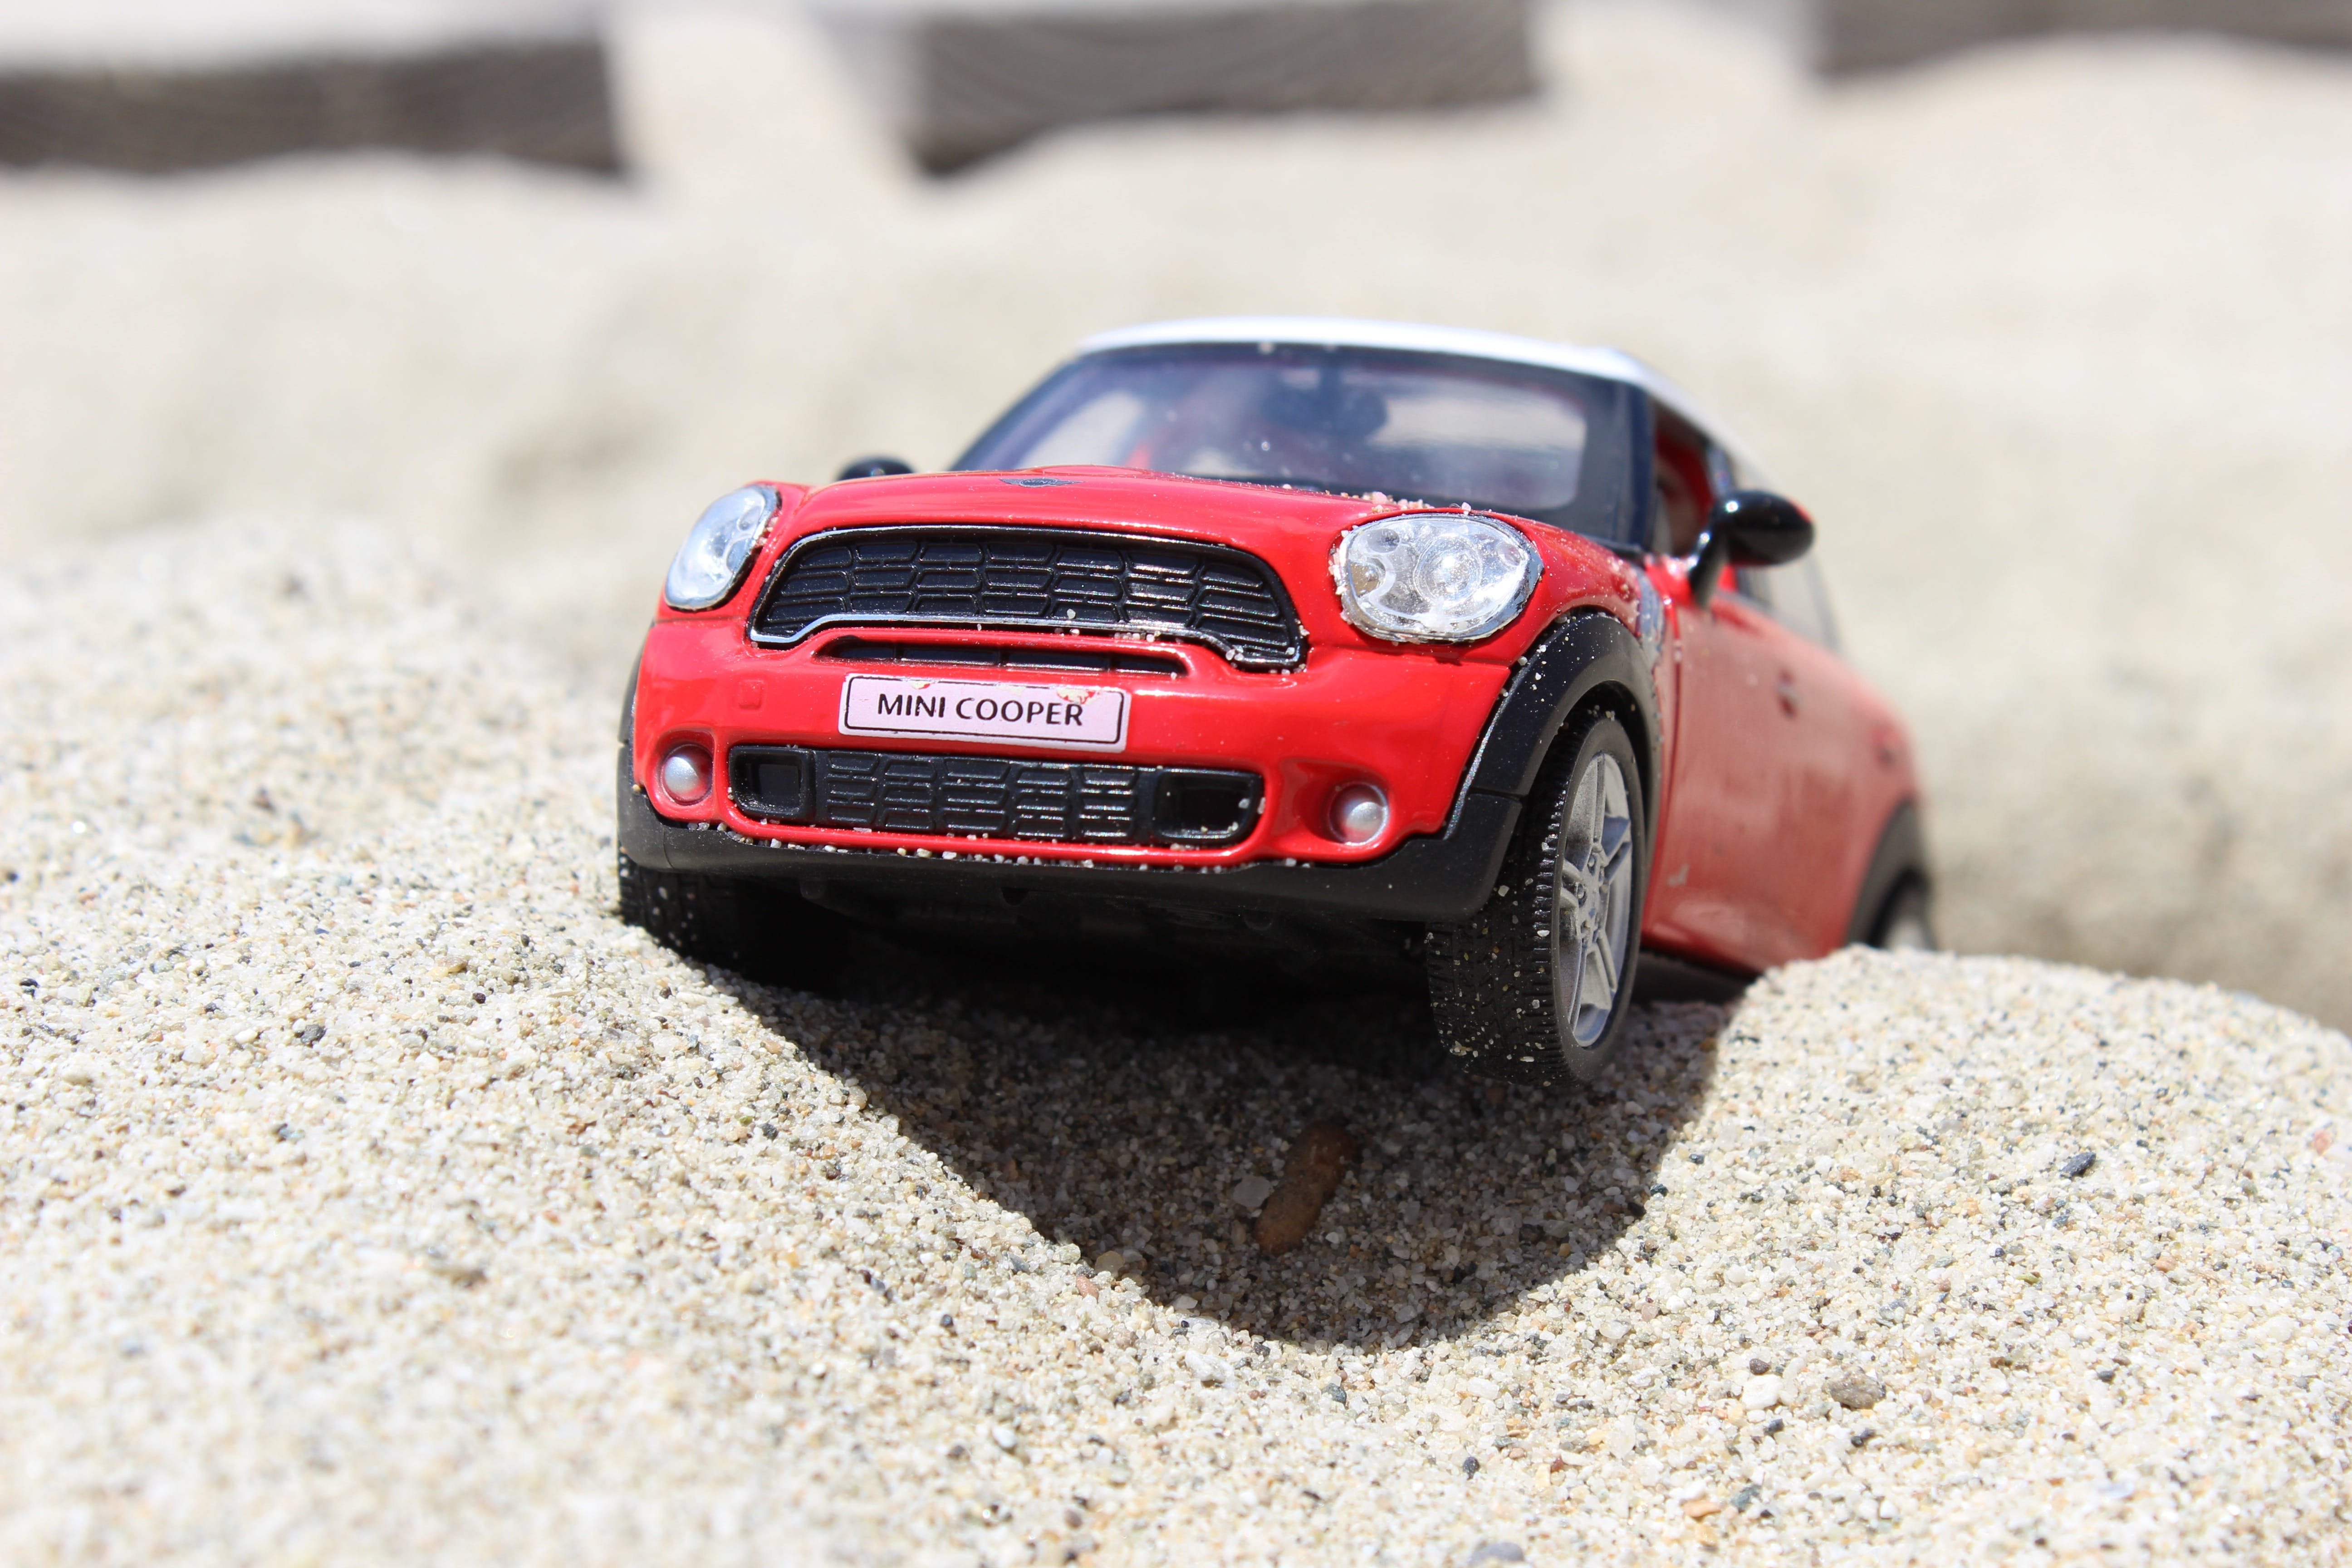 Black and Red Mini Cooper Scale Model